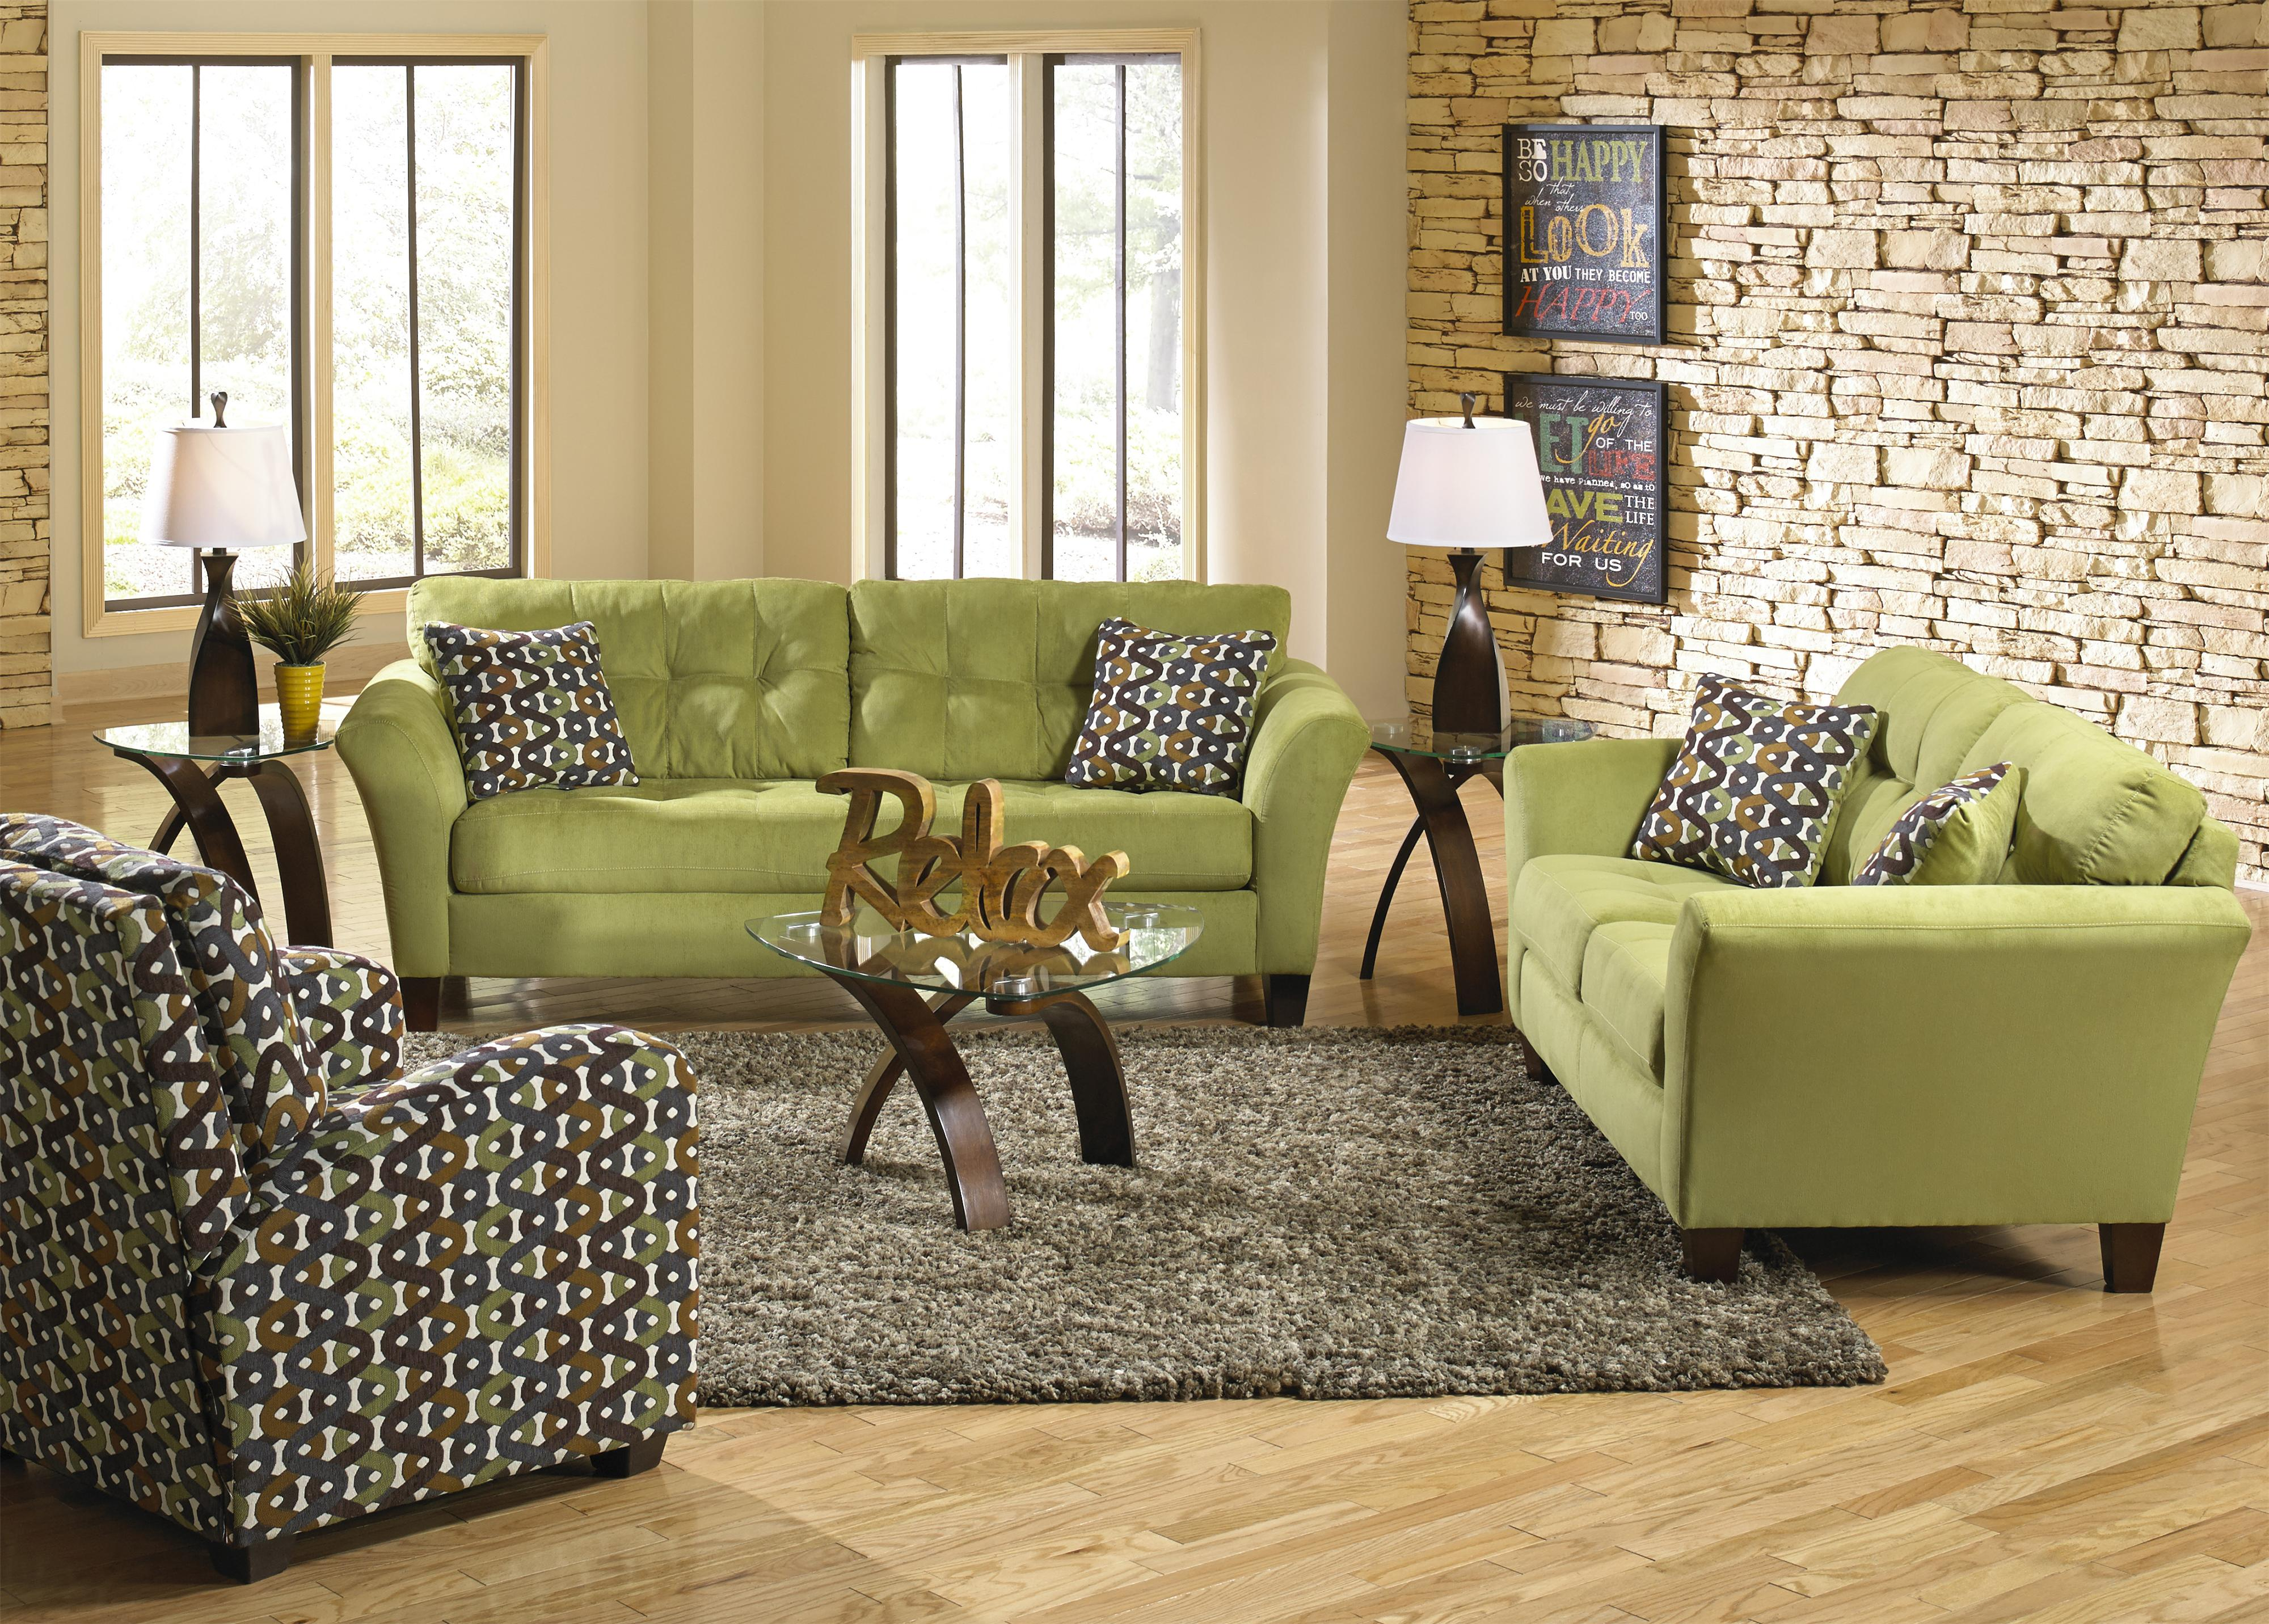 Halle 4381 by Jackson Furniture Adcock Furniture Jackson